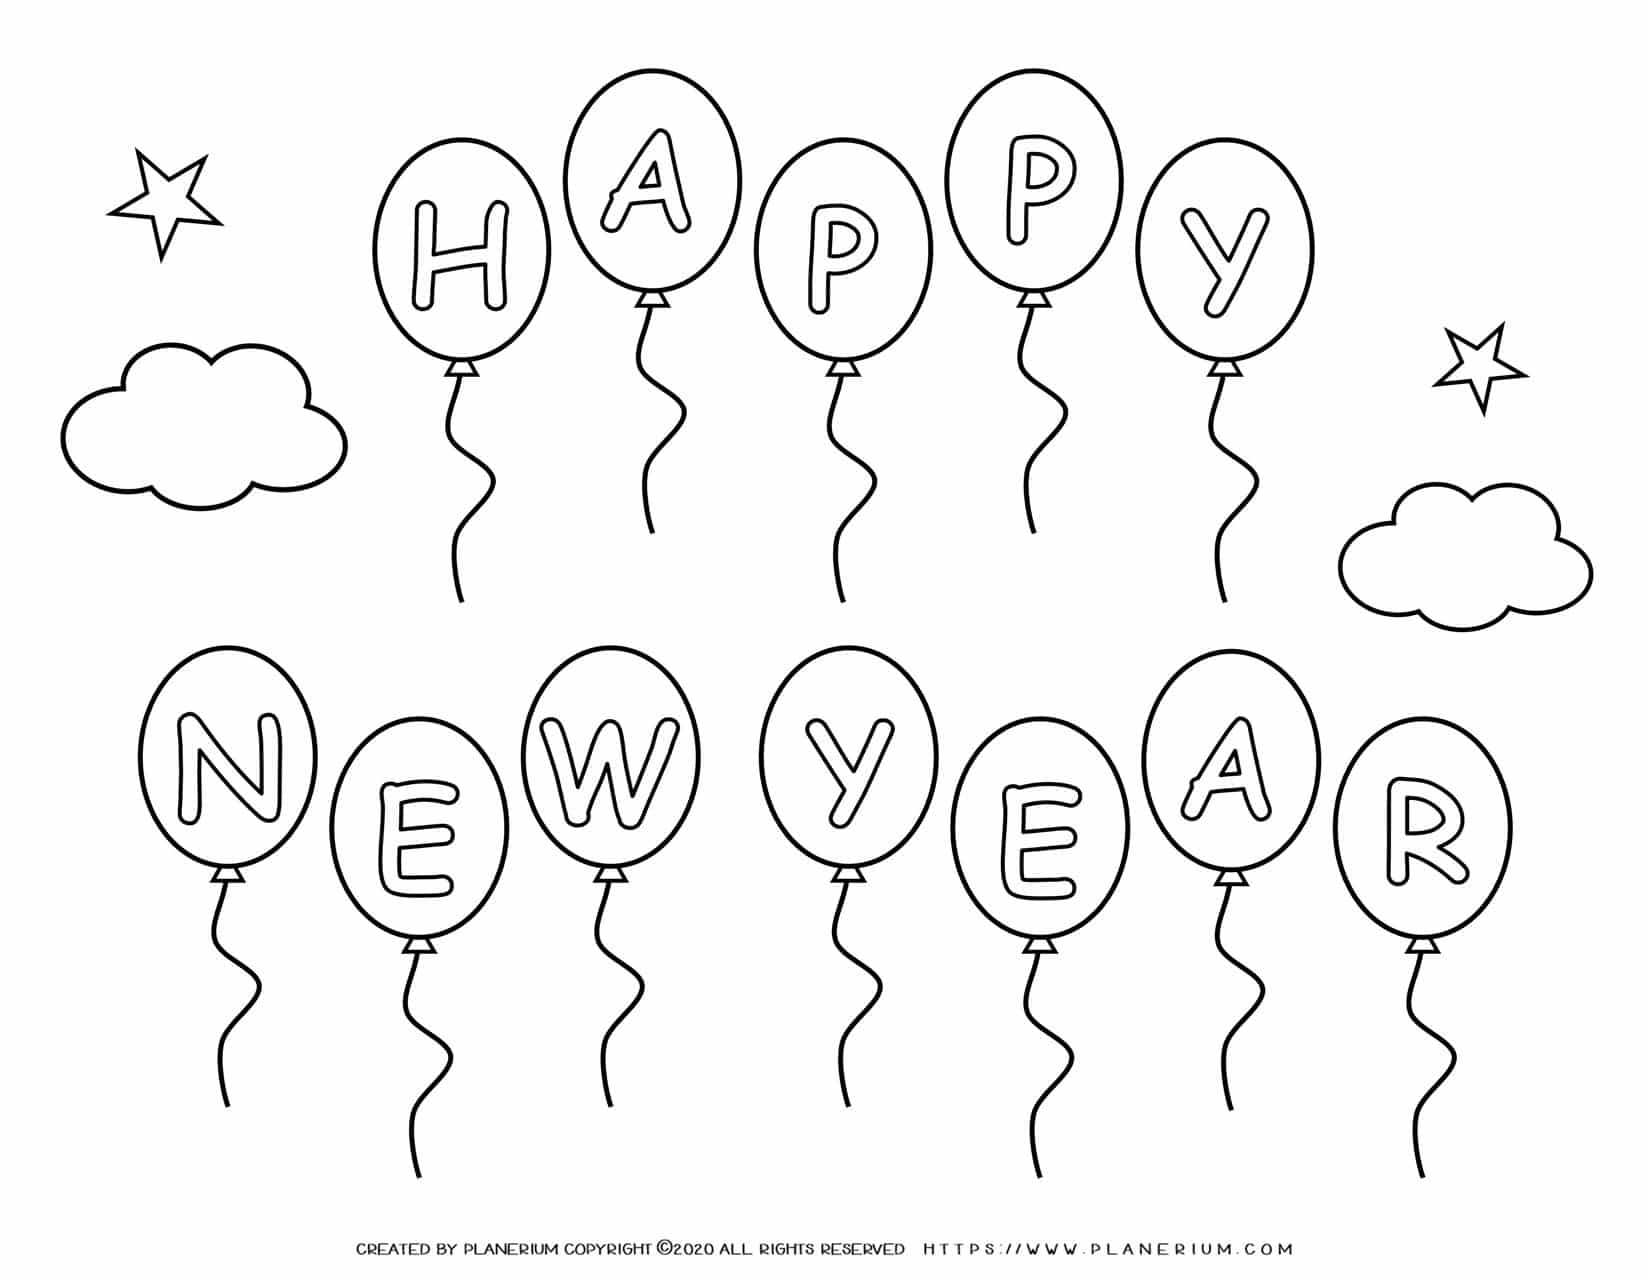 New Year Coloring Pages - Happy New Year Balloons   Planerium